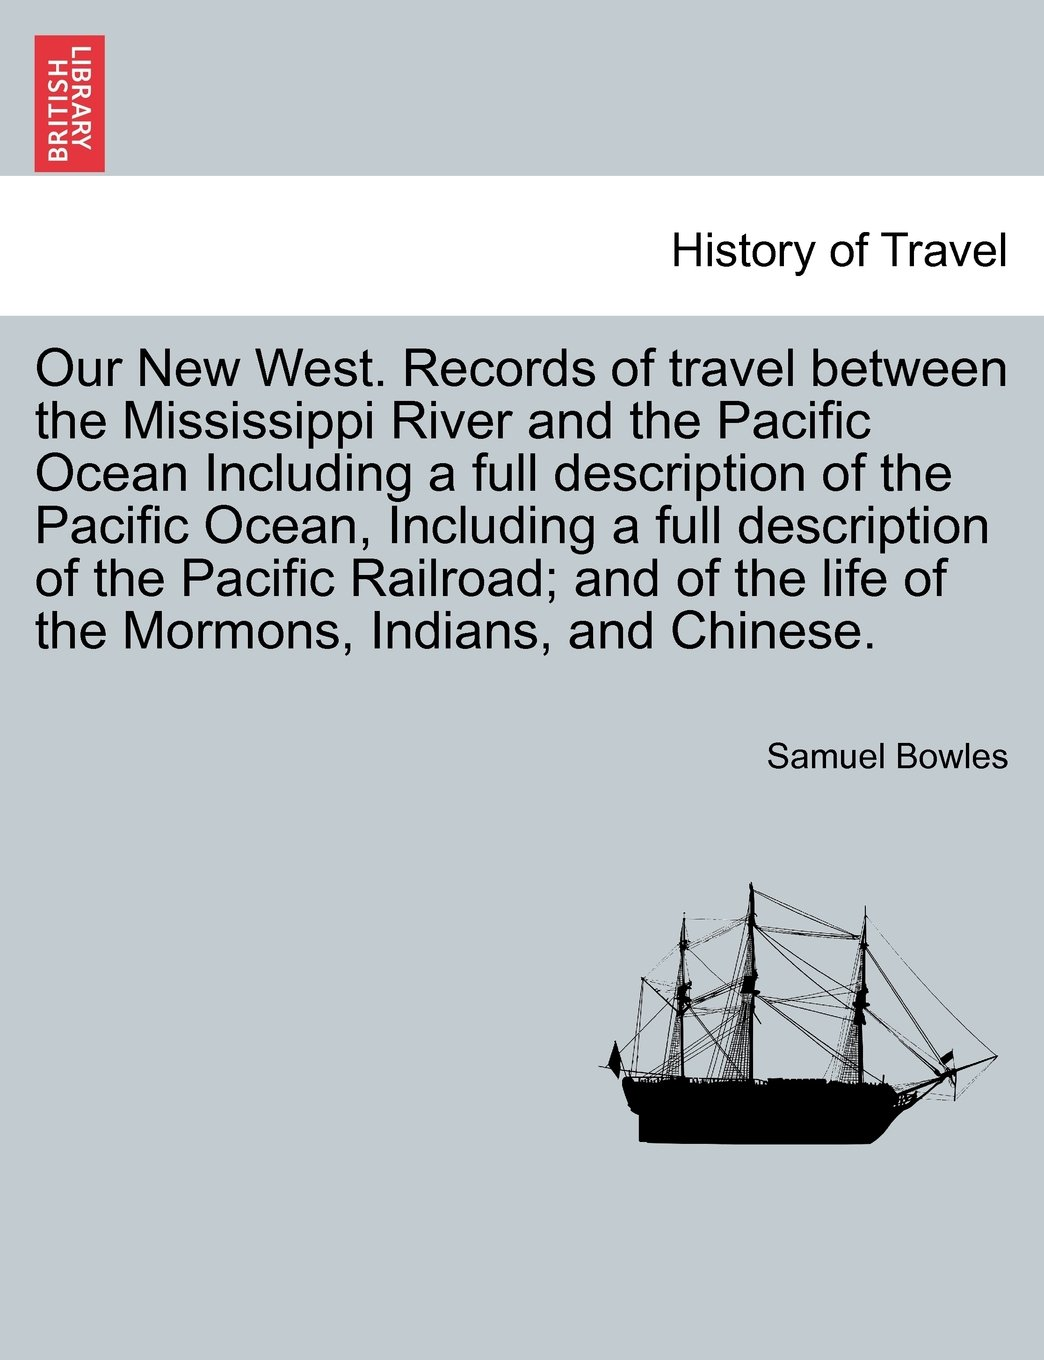 Read Online Our New West. Records of travel between the Mississippi River and the Pacific Ocean Including a full description of the Pacific Ocean, Including a ... life of the Mormons, Indians, and Chinese. pdf